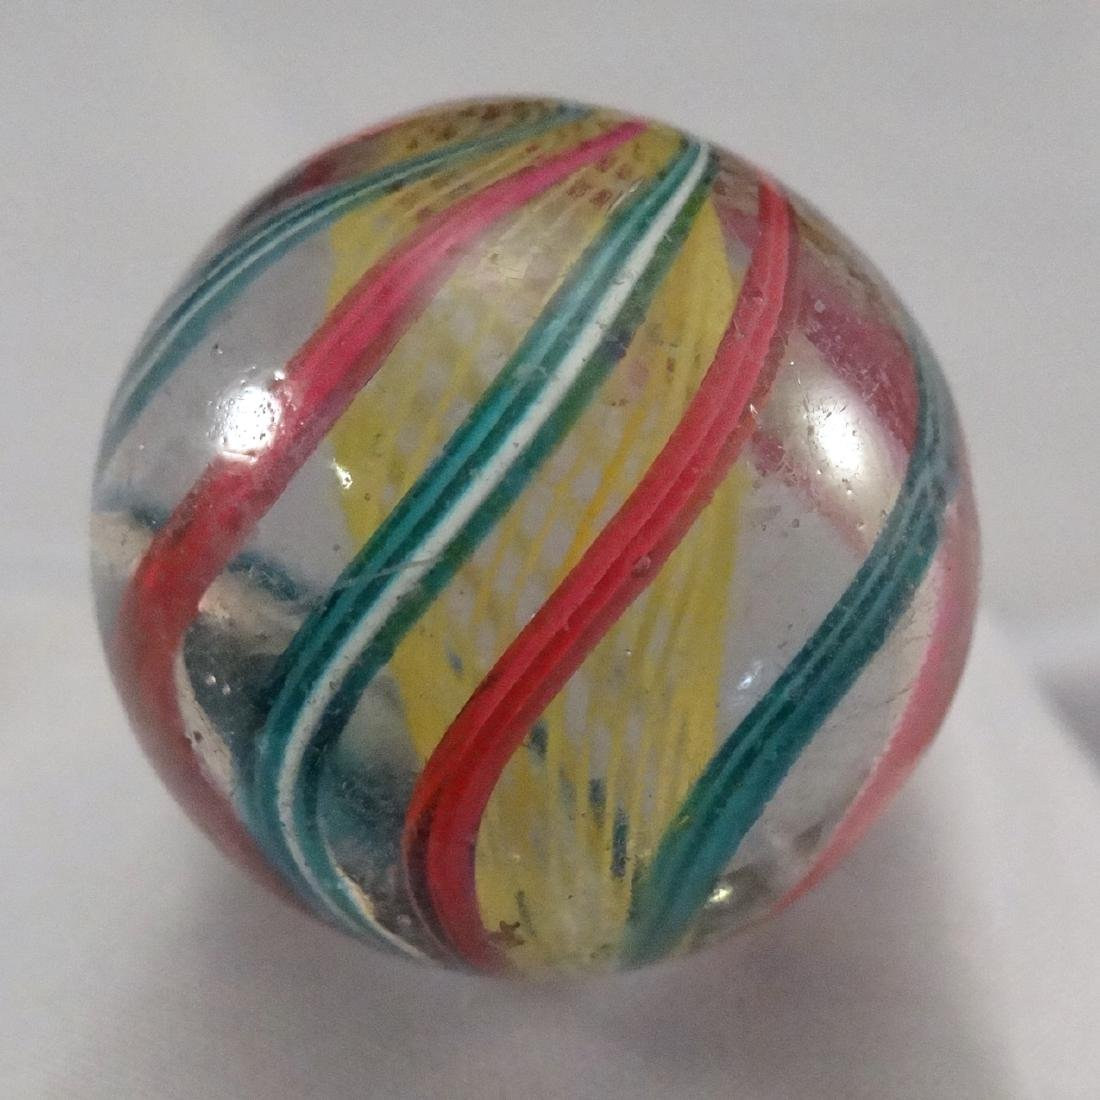 "Lot 81. SWIRL, Latticinio Core. 1-3/16"". 8.7"